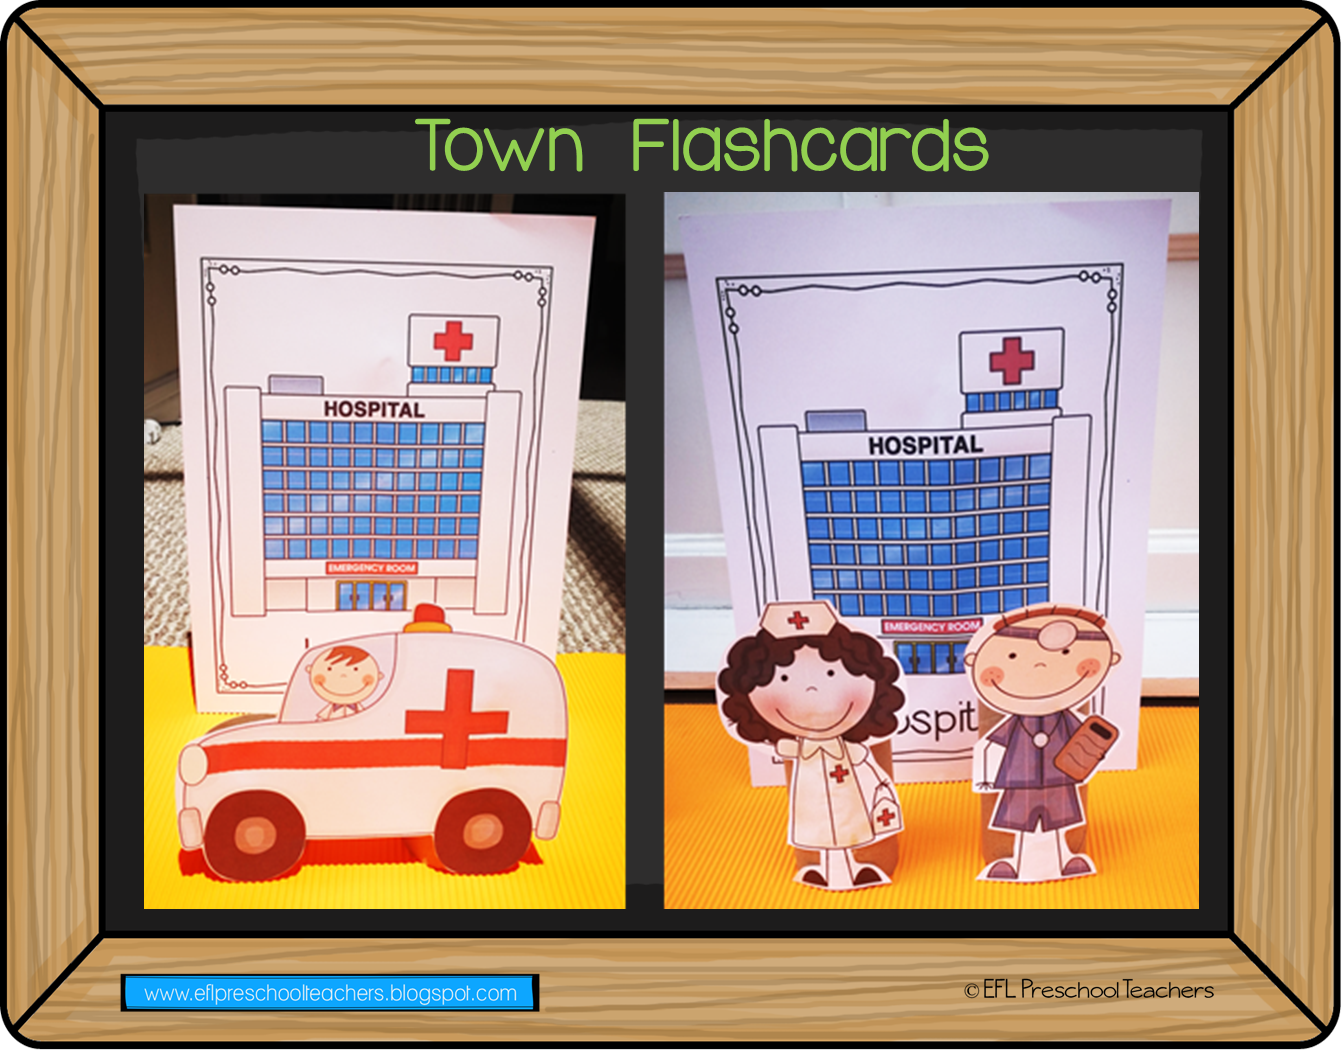 Esl Efl Preschool Teachers Town Theme For Preschool Ela